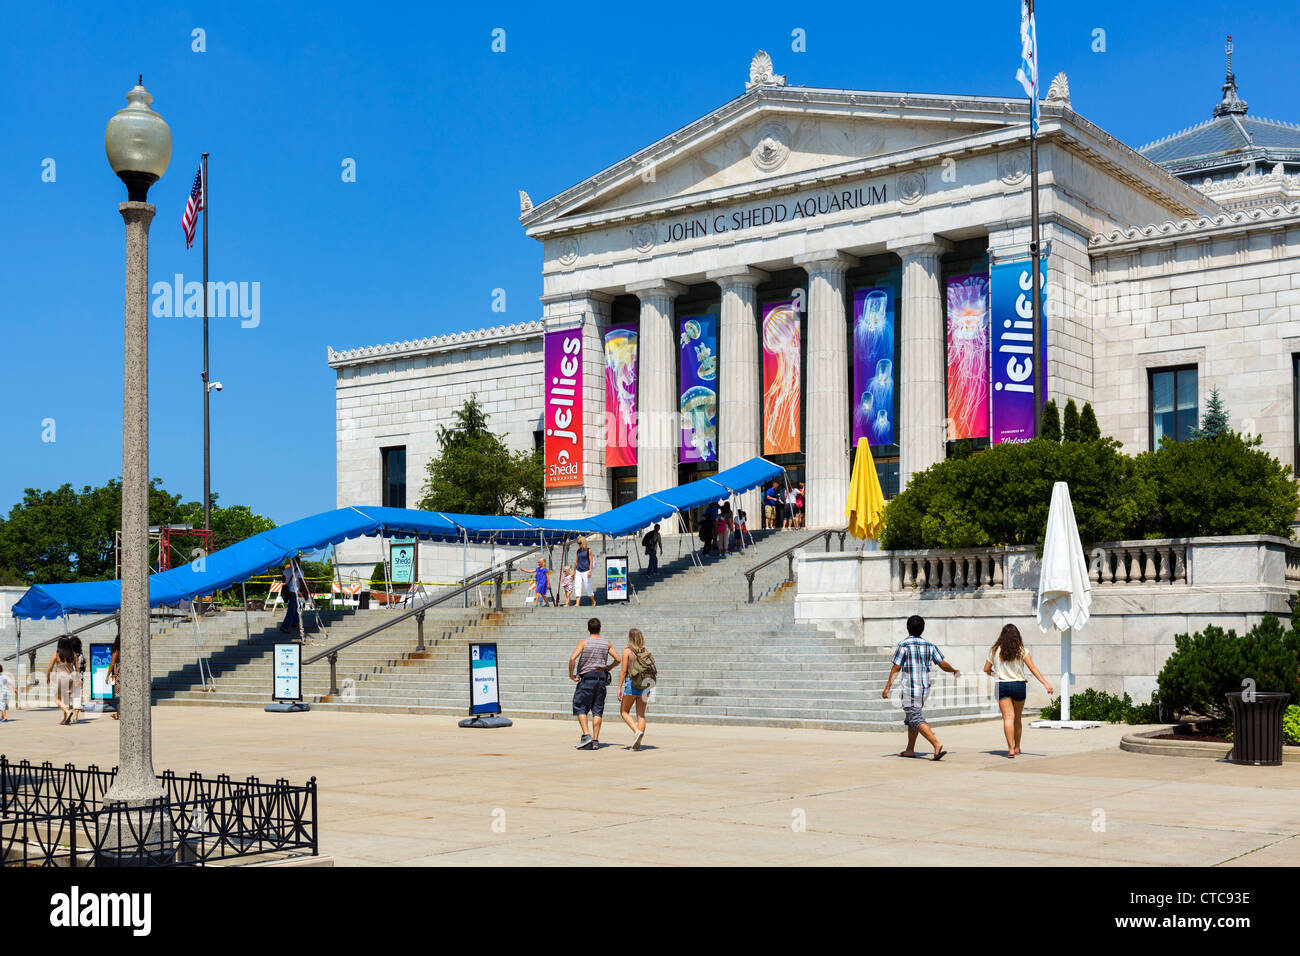 Shedd Aquarium Parking Open Full Map Airport Shuttle Bicycle Parking Car Wash Covered Parking On-Site Elevator EV Charger Guidance System Handicap Spaces In and Out Parking Lighting Airport/Venue Official Open 24/7 Over 7ft.